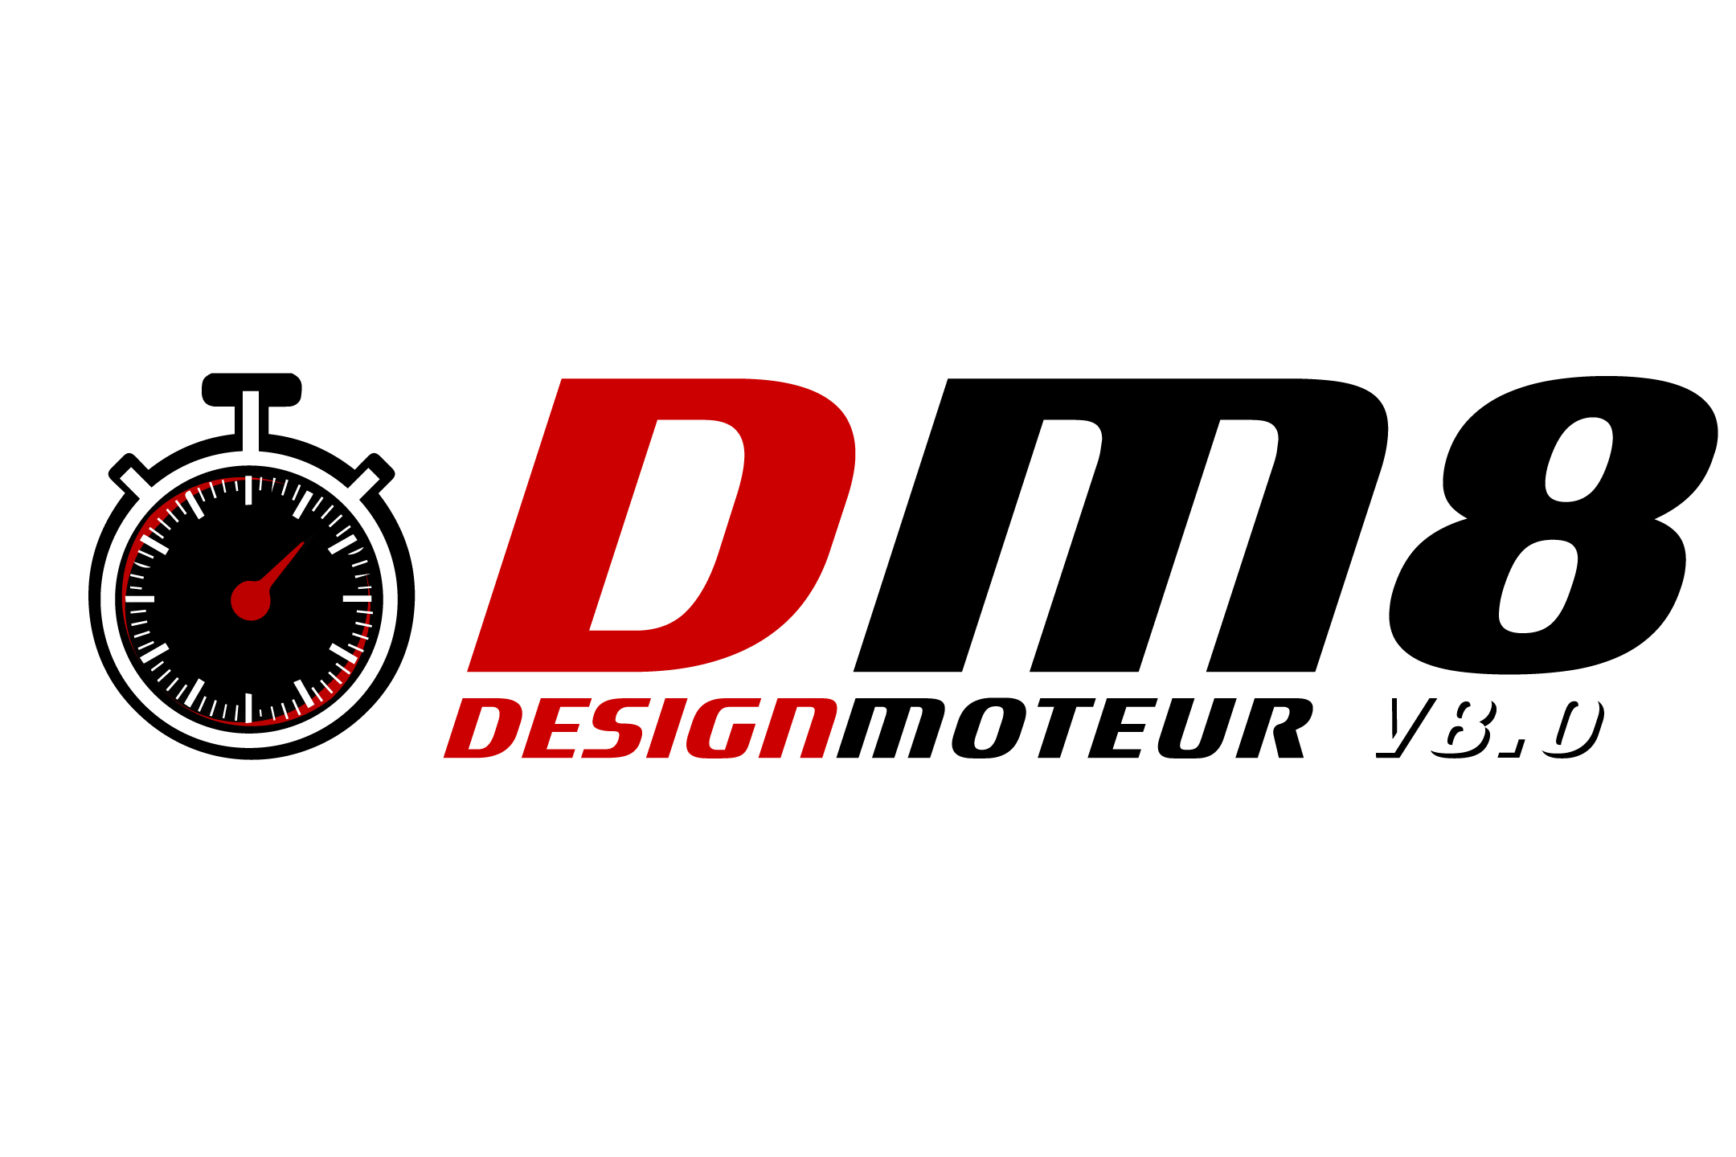 Artwork - DESIGNMOTEUR v8 - logo dm8